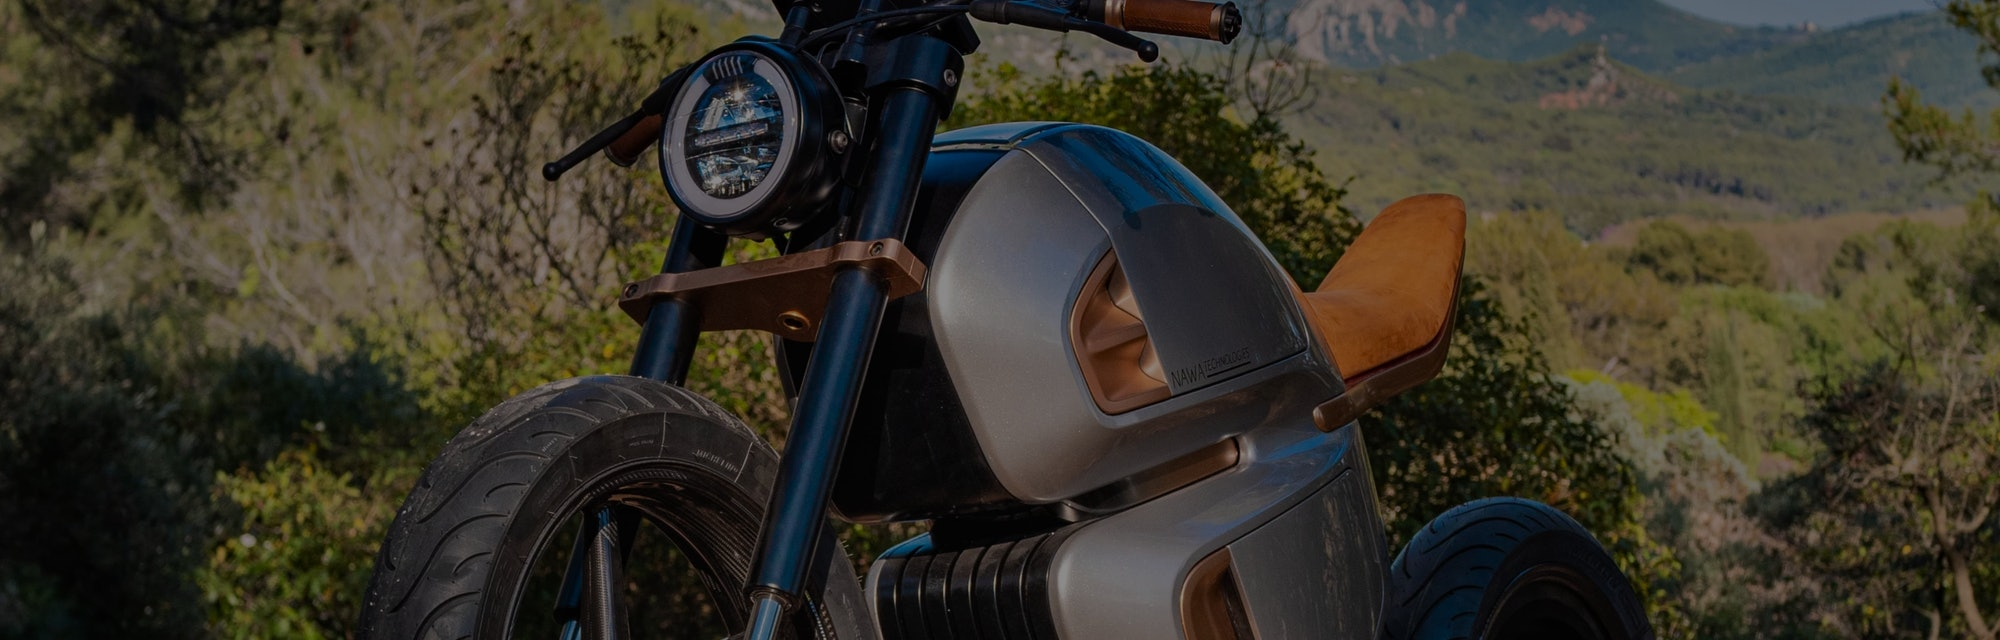 NAWA's Racer is a hybrid motorcycle that uses a supercapacitor to increase efficiency.